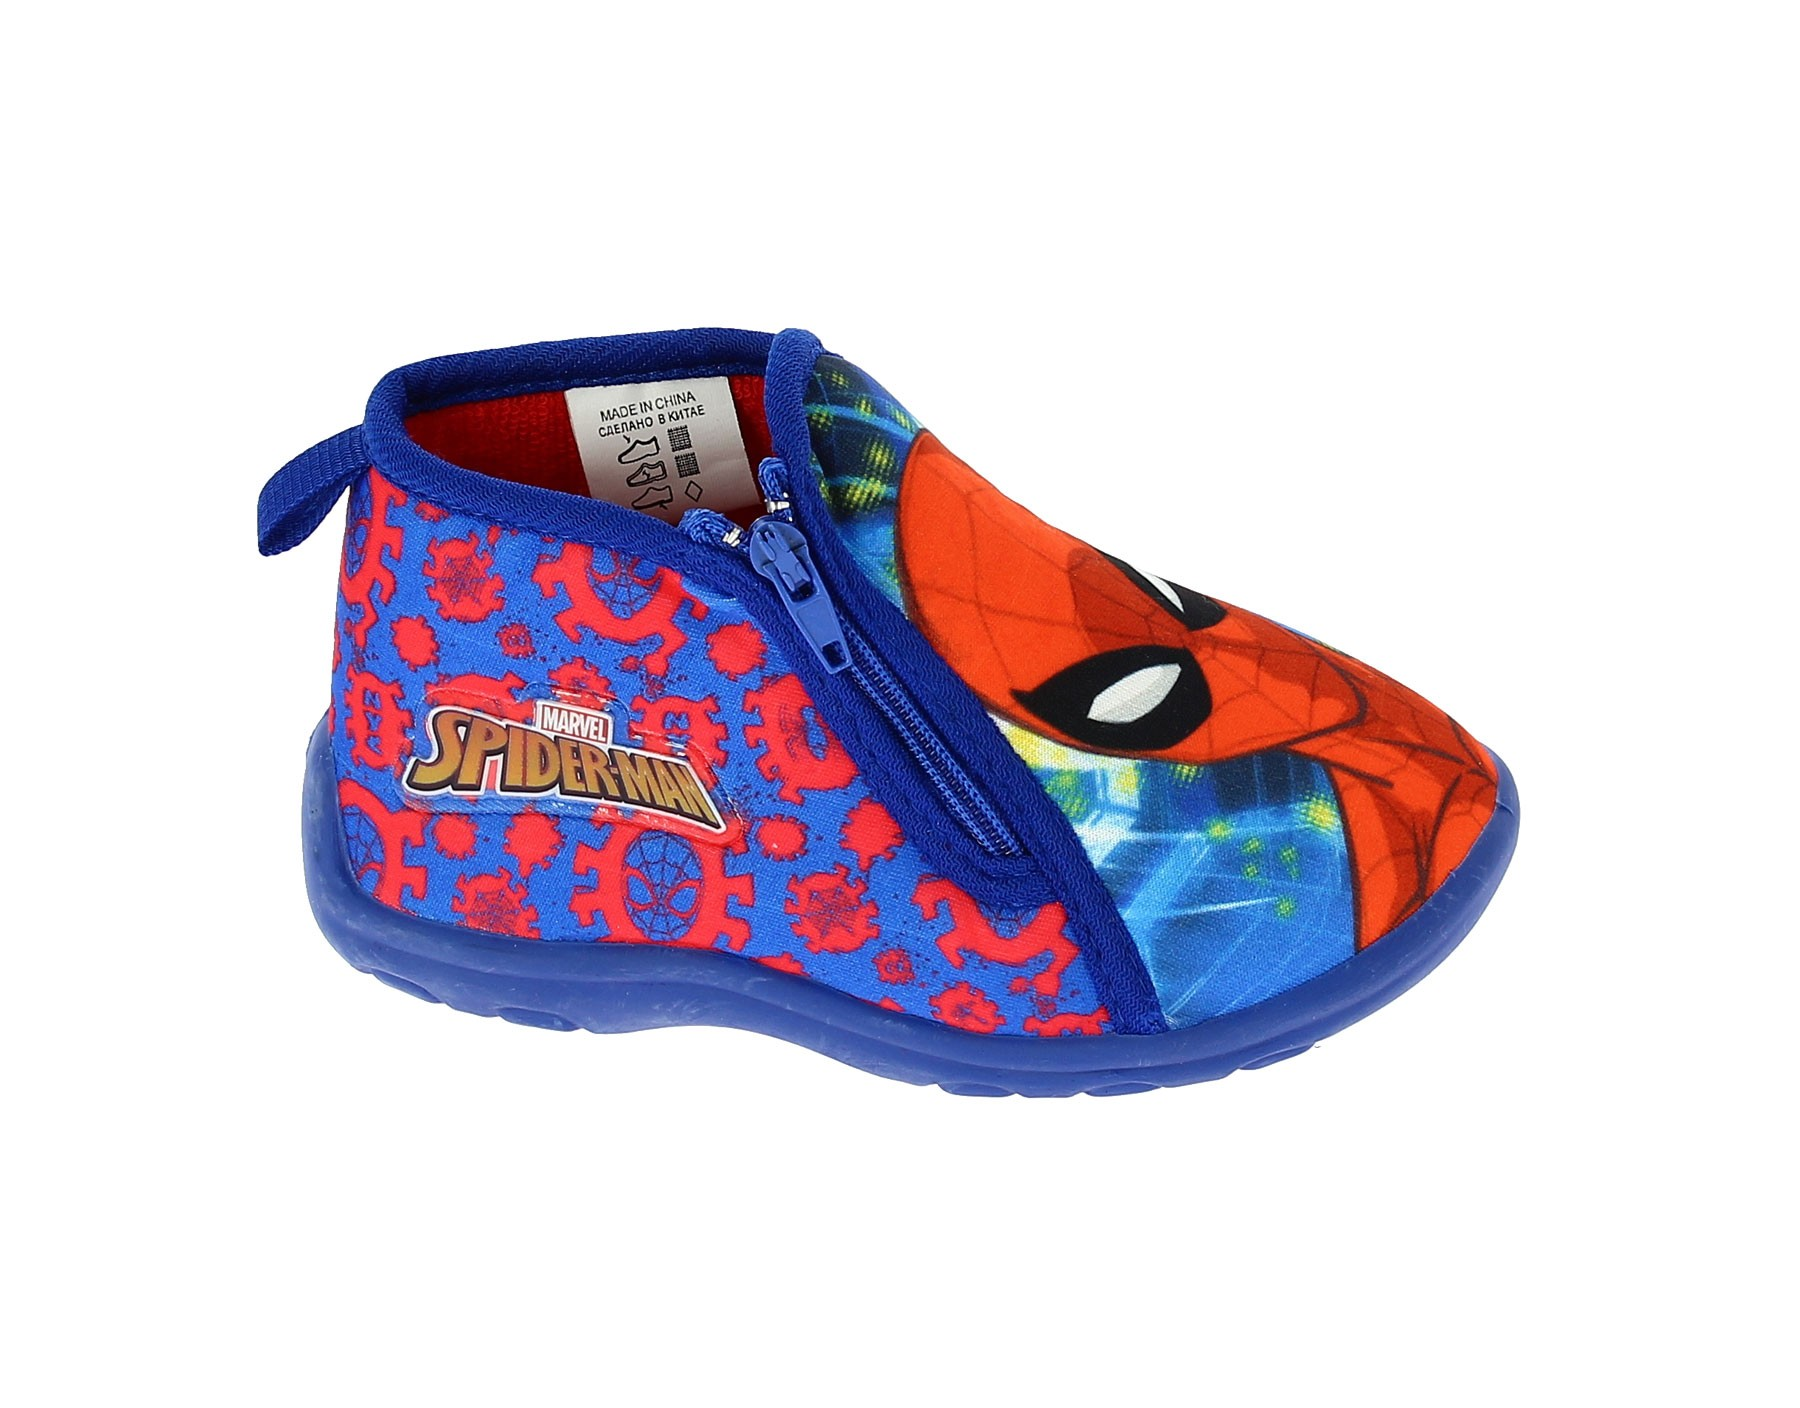 Pantofola con zip Spiderman Blu